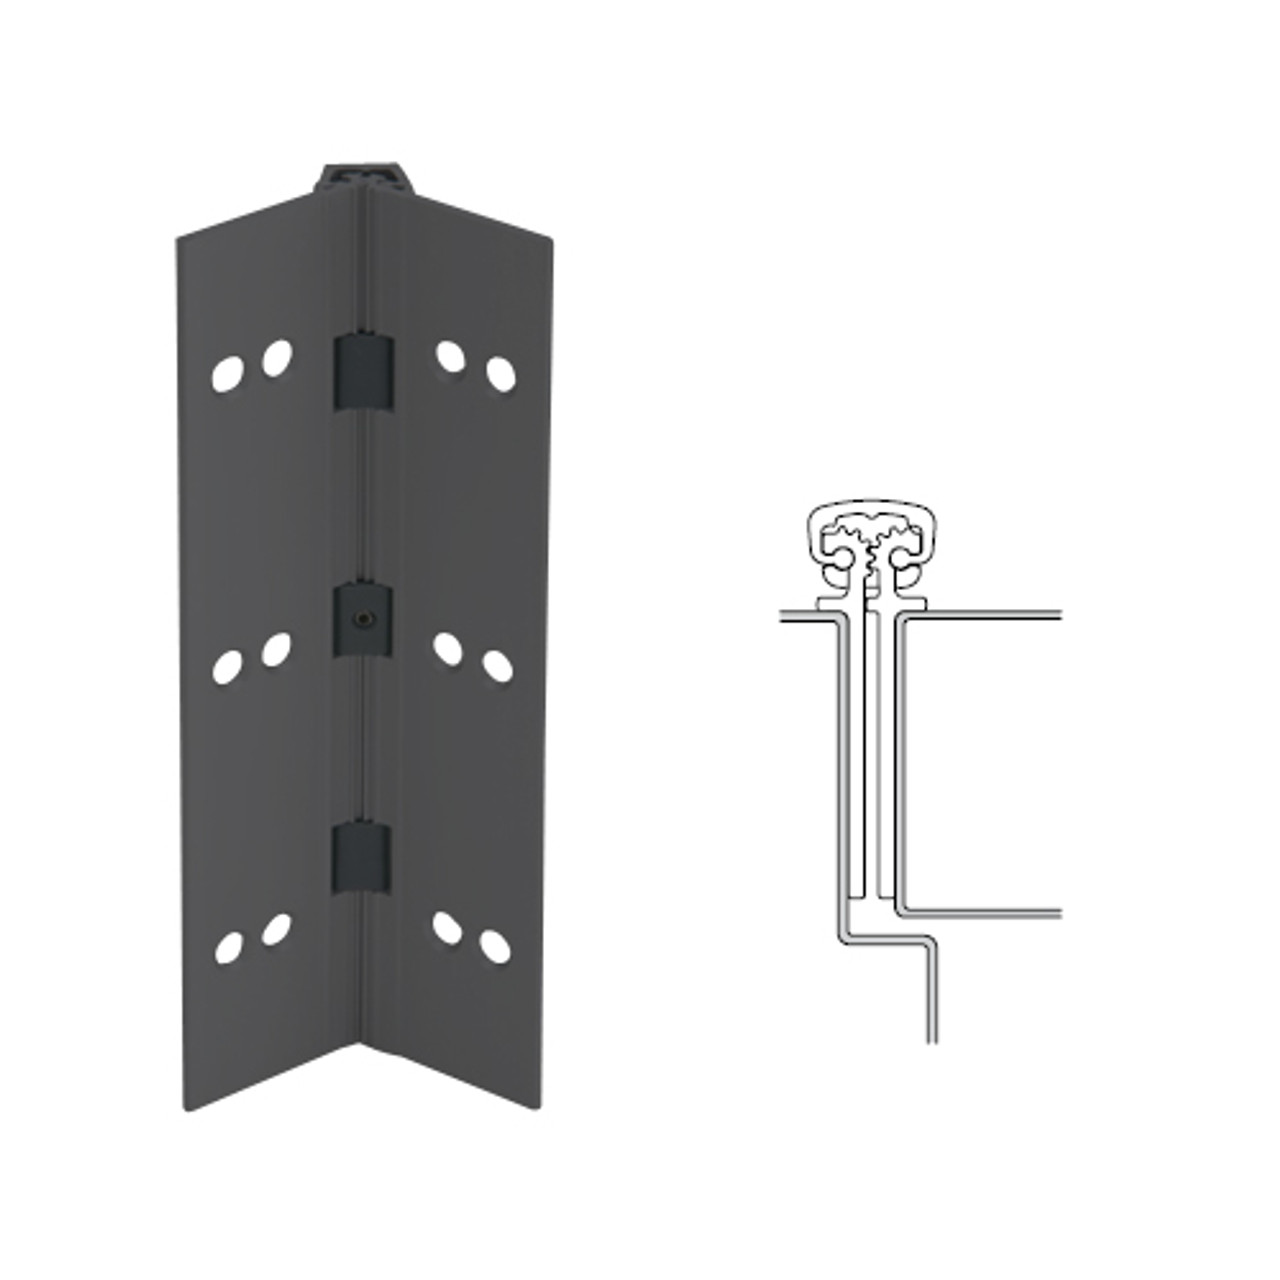 027XY-315AN-83-WD IVES Full Mortise Continuous Geared Hinges with Wood Screws in Anodized Black